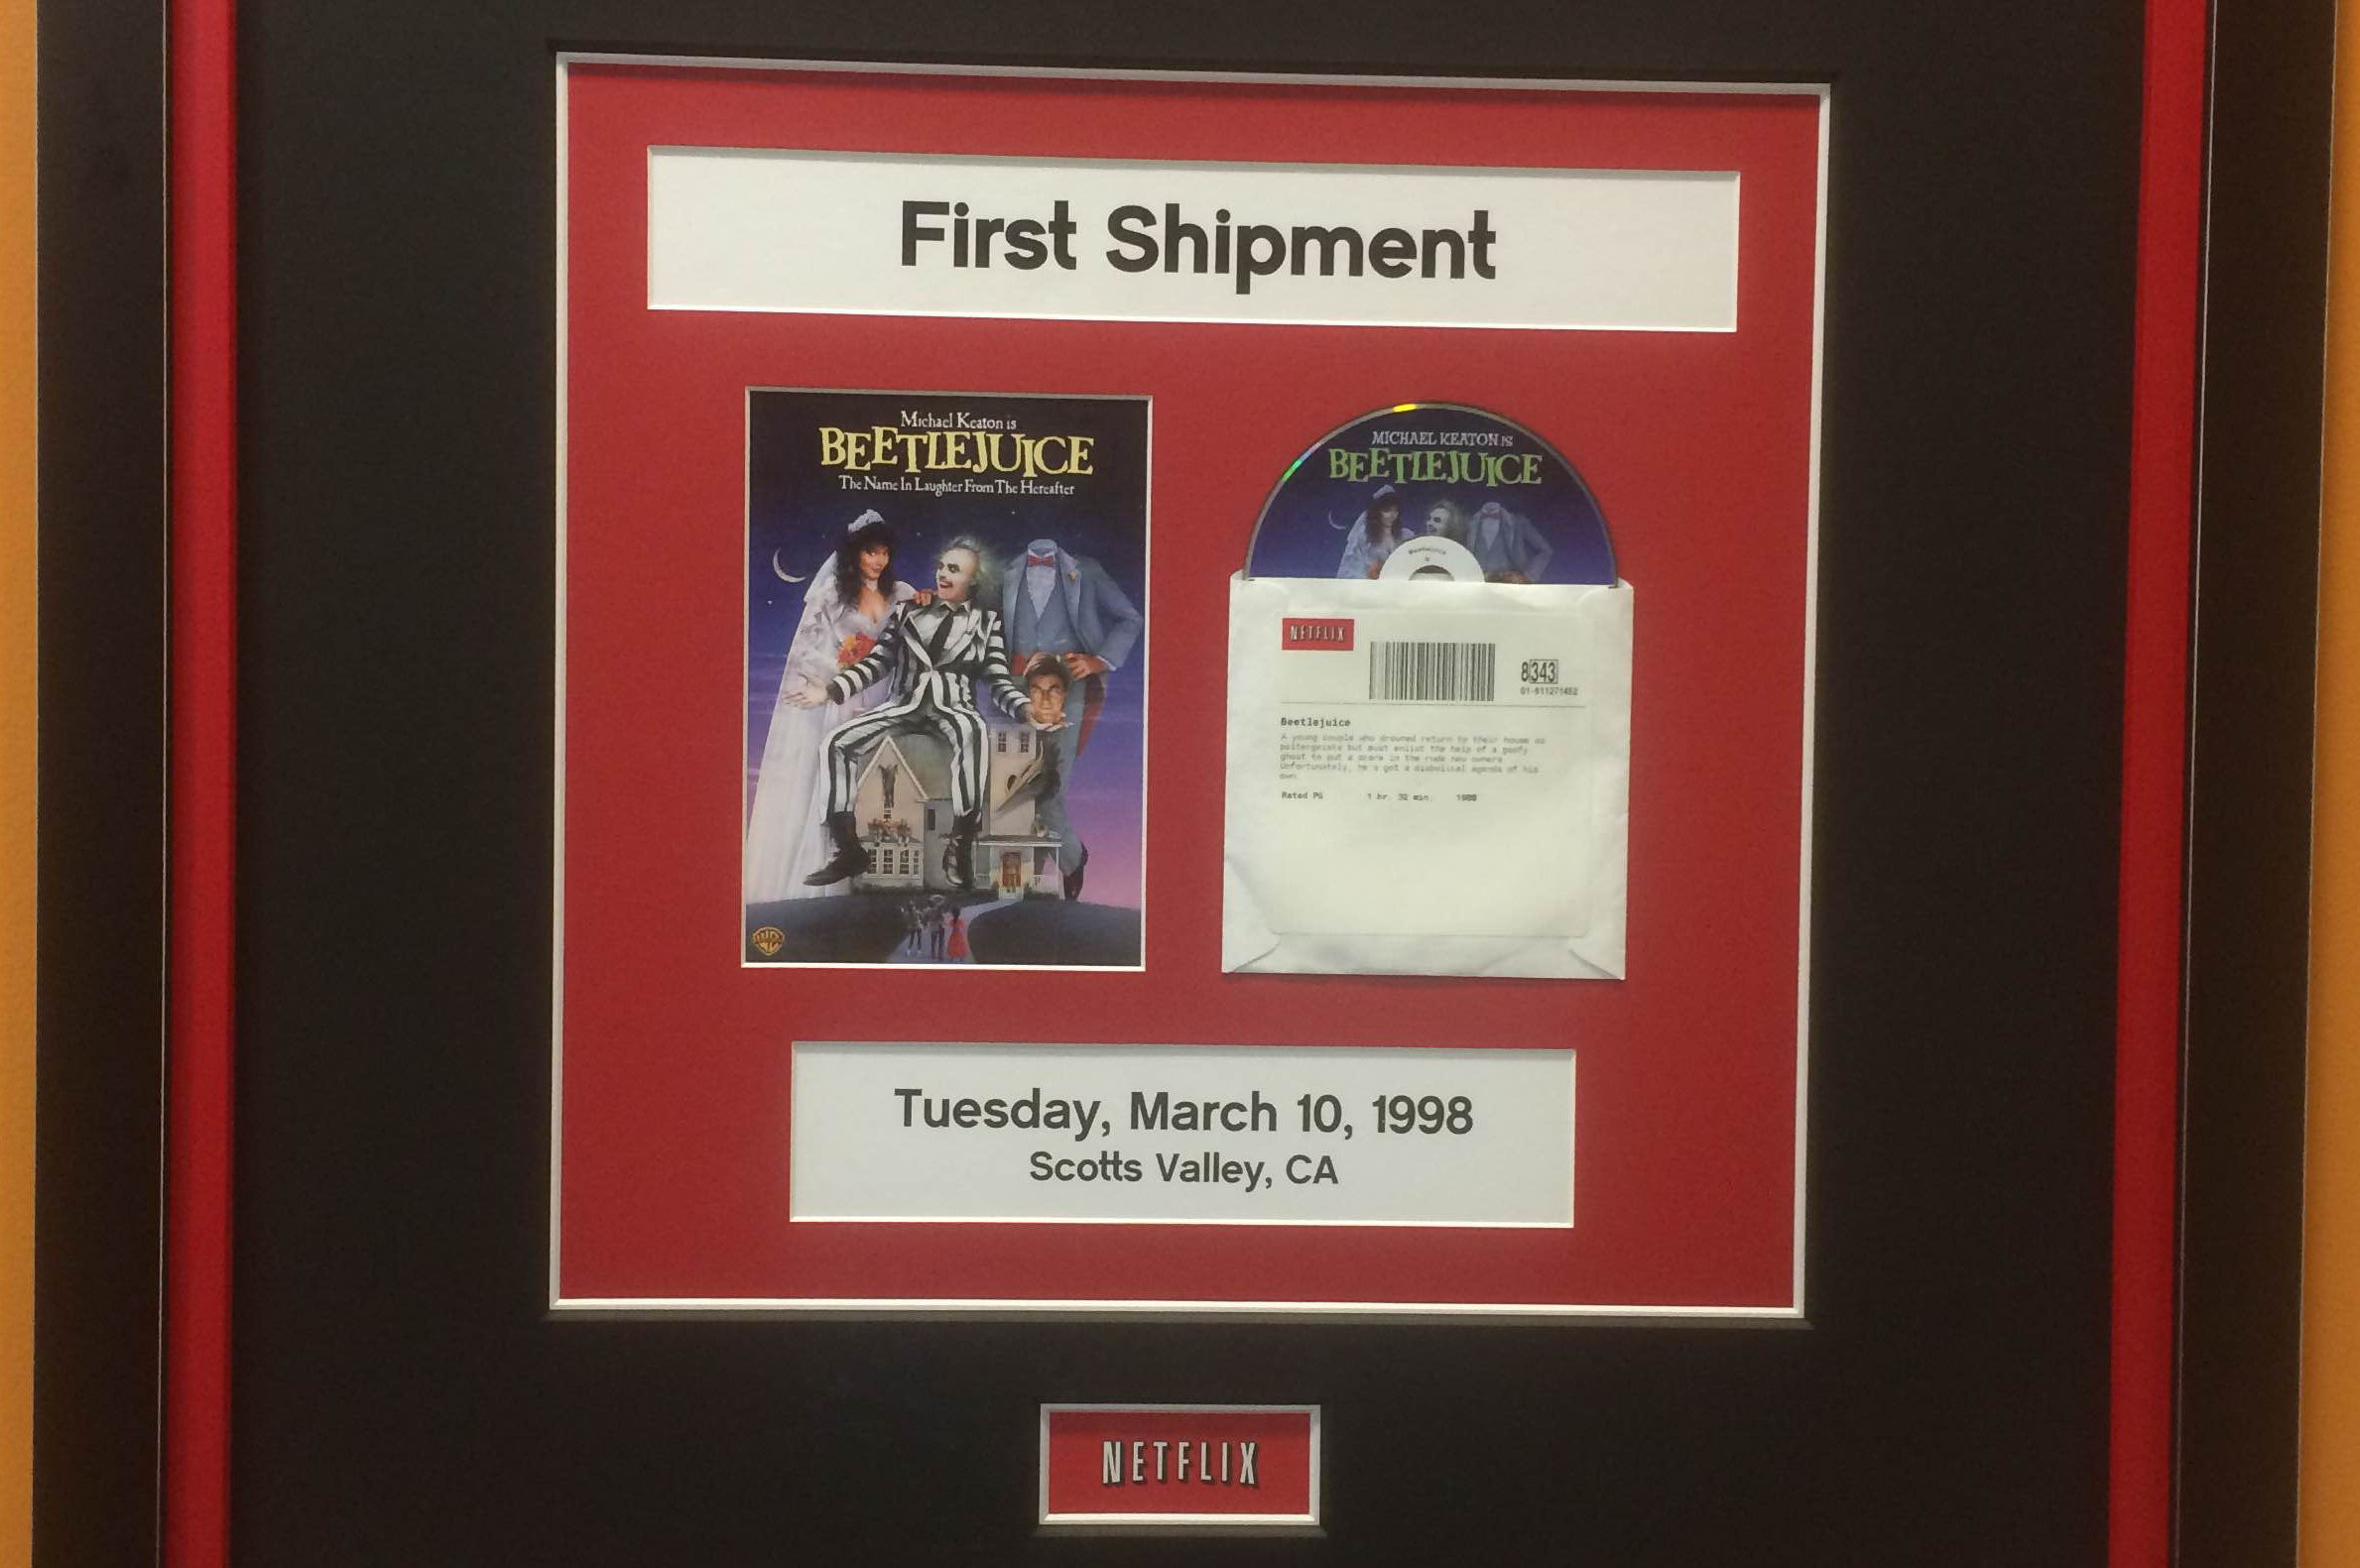 The first DVD we ever shipped! It's framed and hangs proudly in the office. The next milestone is the five billionth shipment.